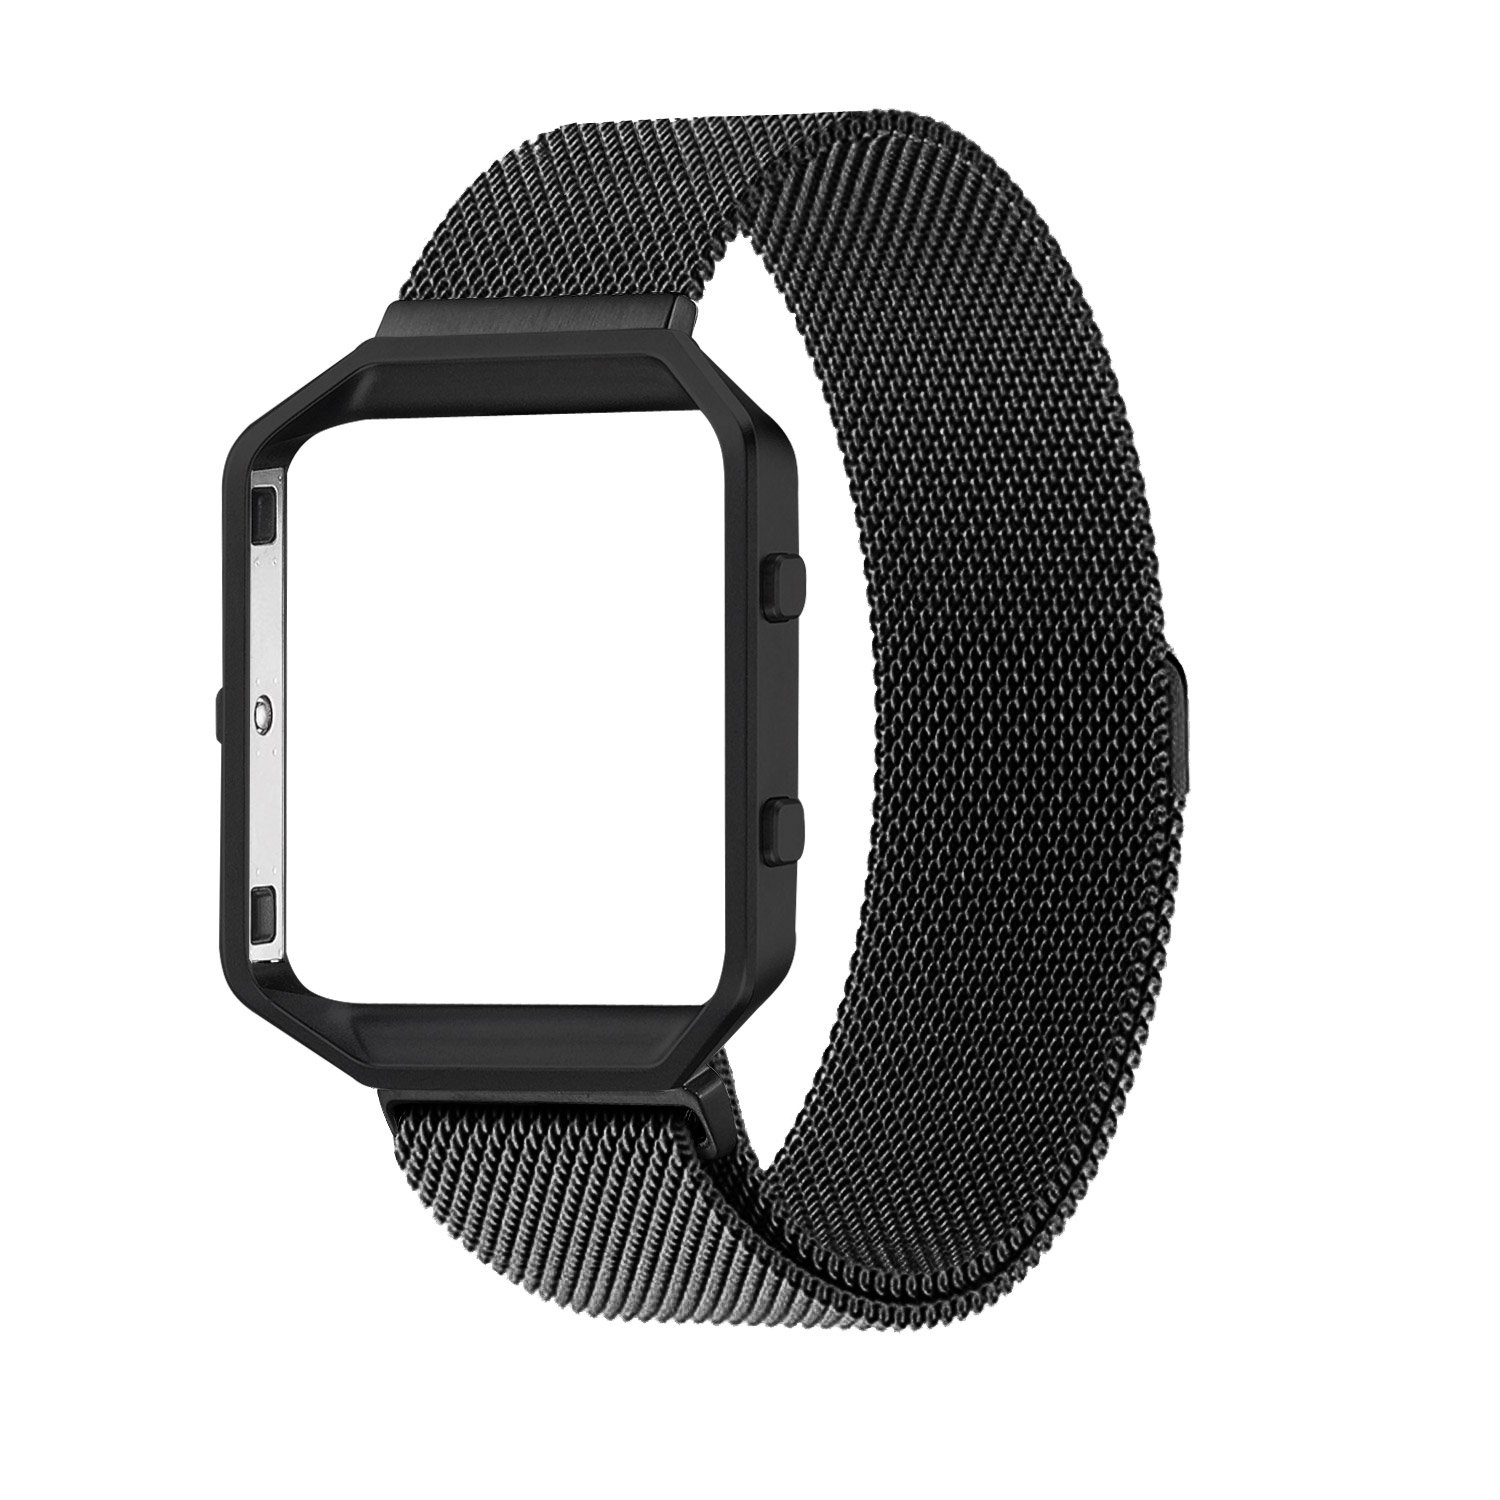 "Fitbit Blaze Accessories Band Large, UMTele Rugged Metal Frame Housing with Magnet Lock Milanese Loop Stainless Steel Bracelet Strap Band for Fitbit Blaze Smart Fitness Watch Black (6.1""-9.3"")"